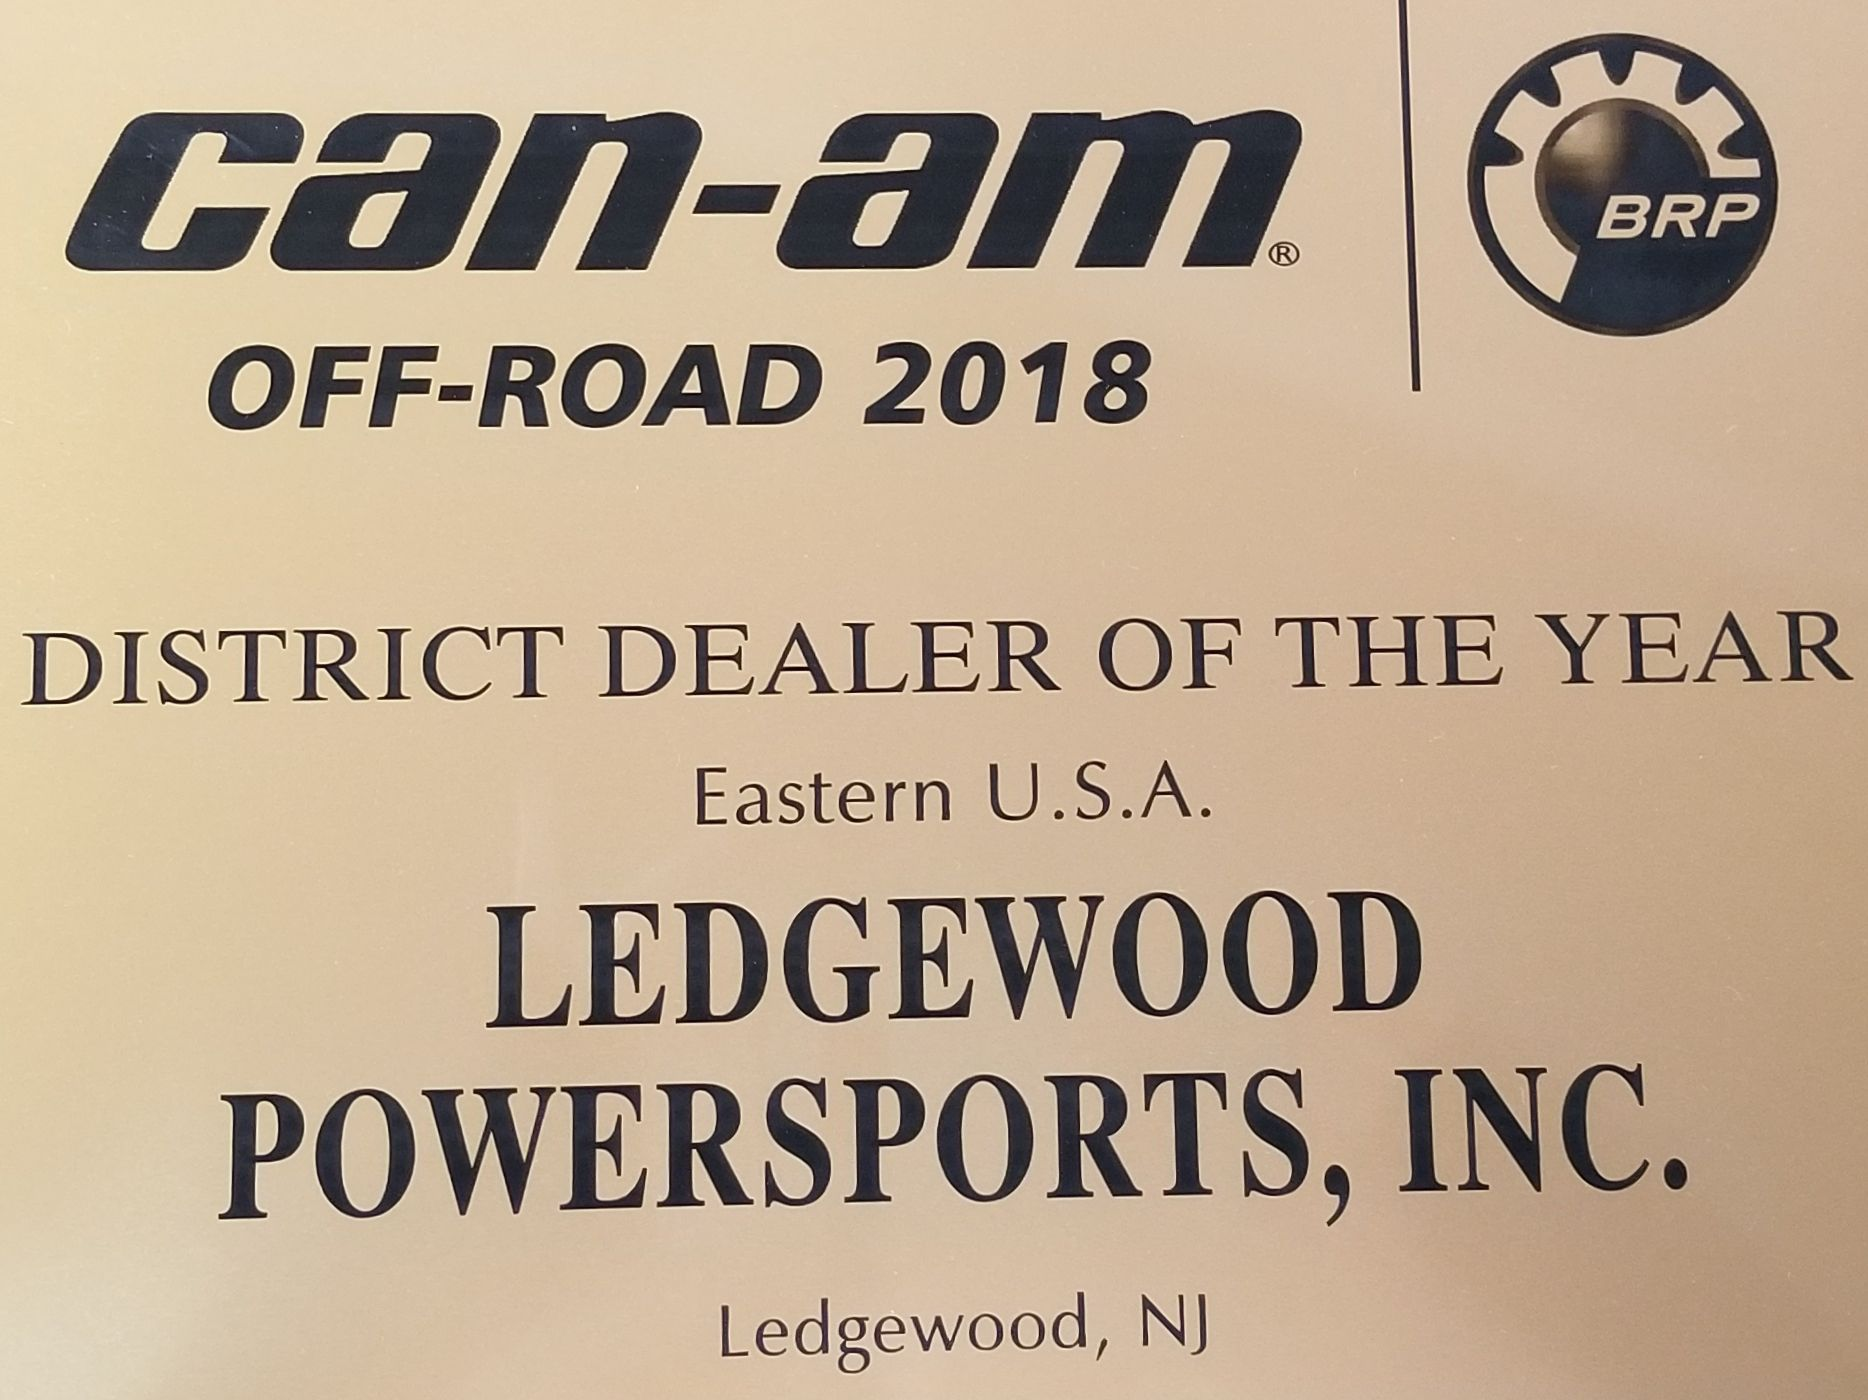 Ledgewood Powersports is the CAN-AM 2018 DISTRICT DEALER OF THE YEAR